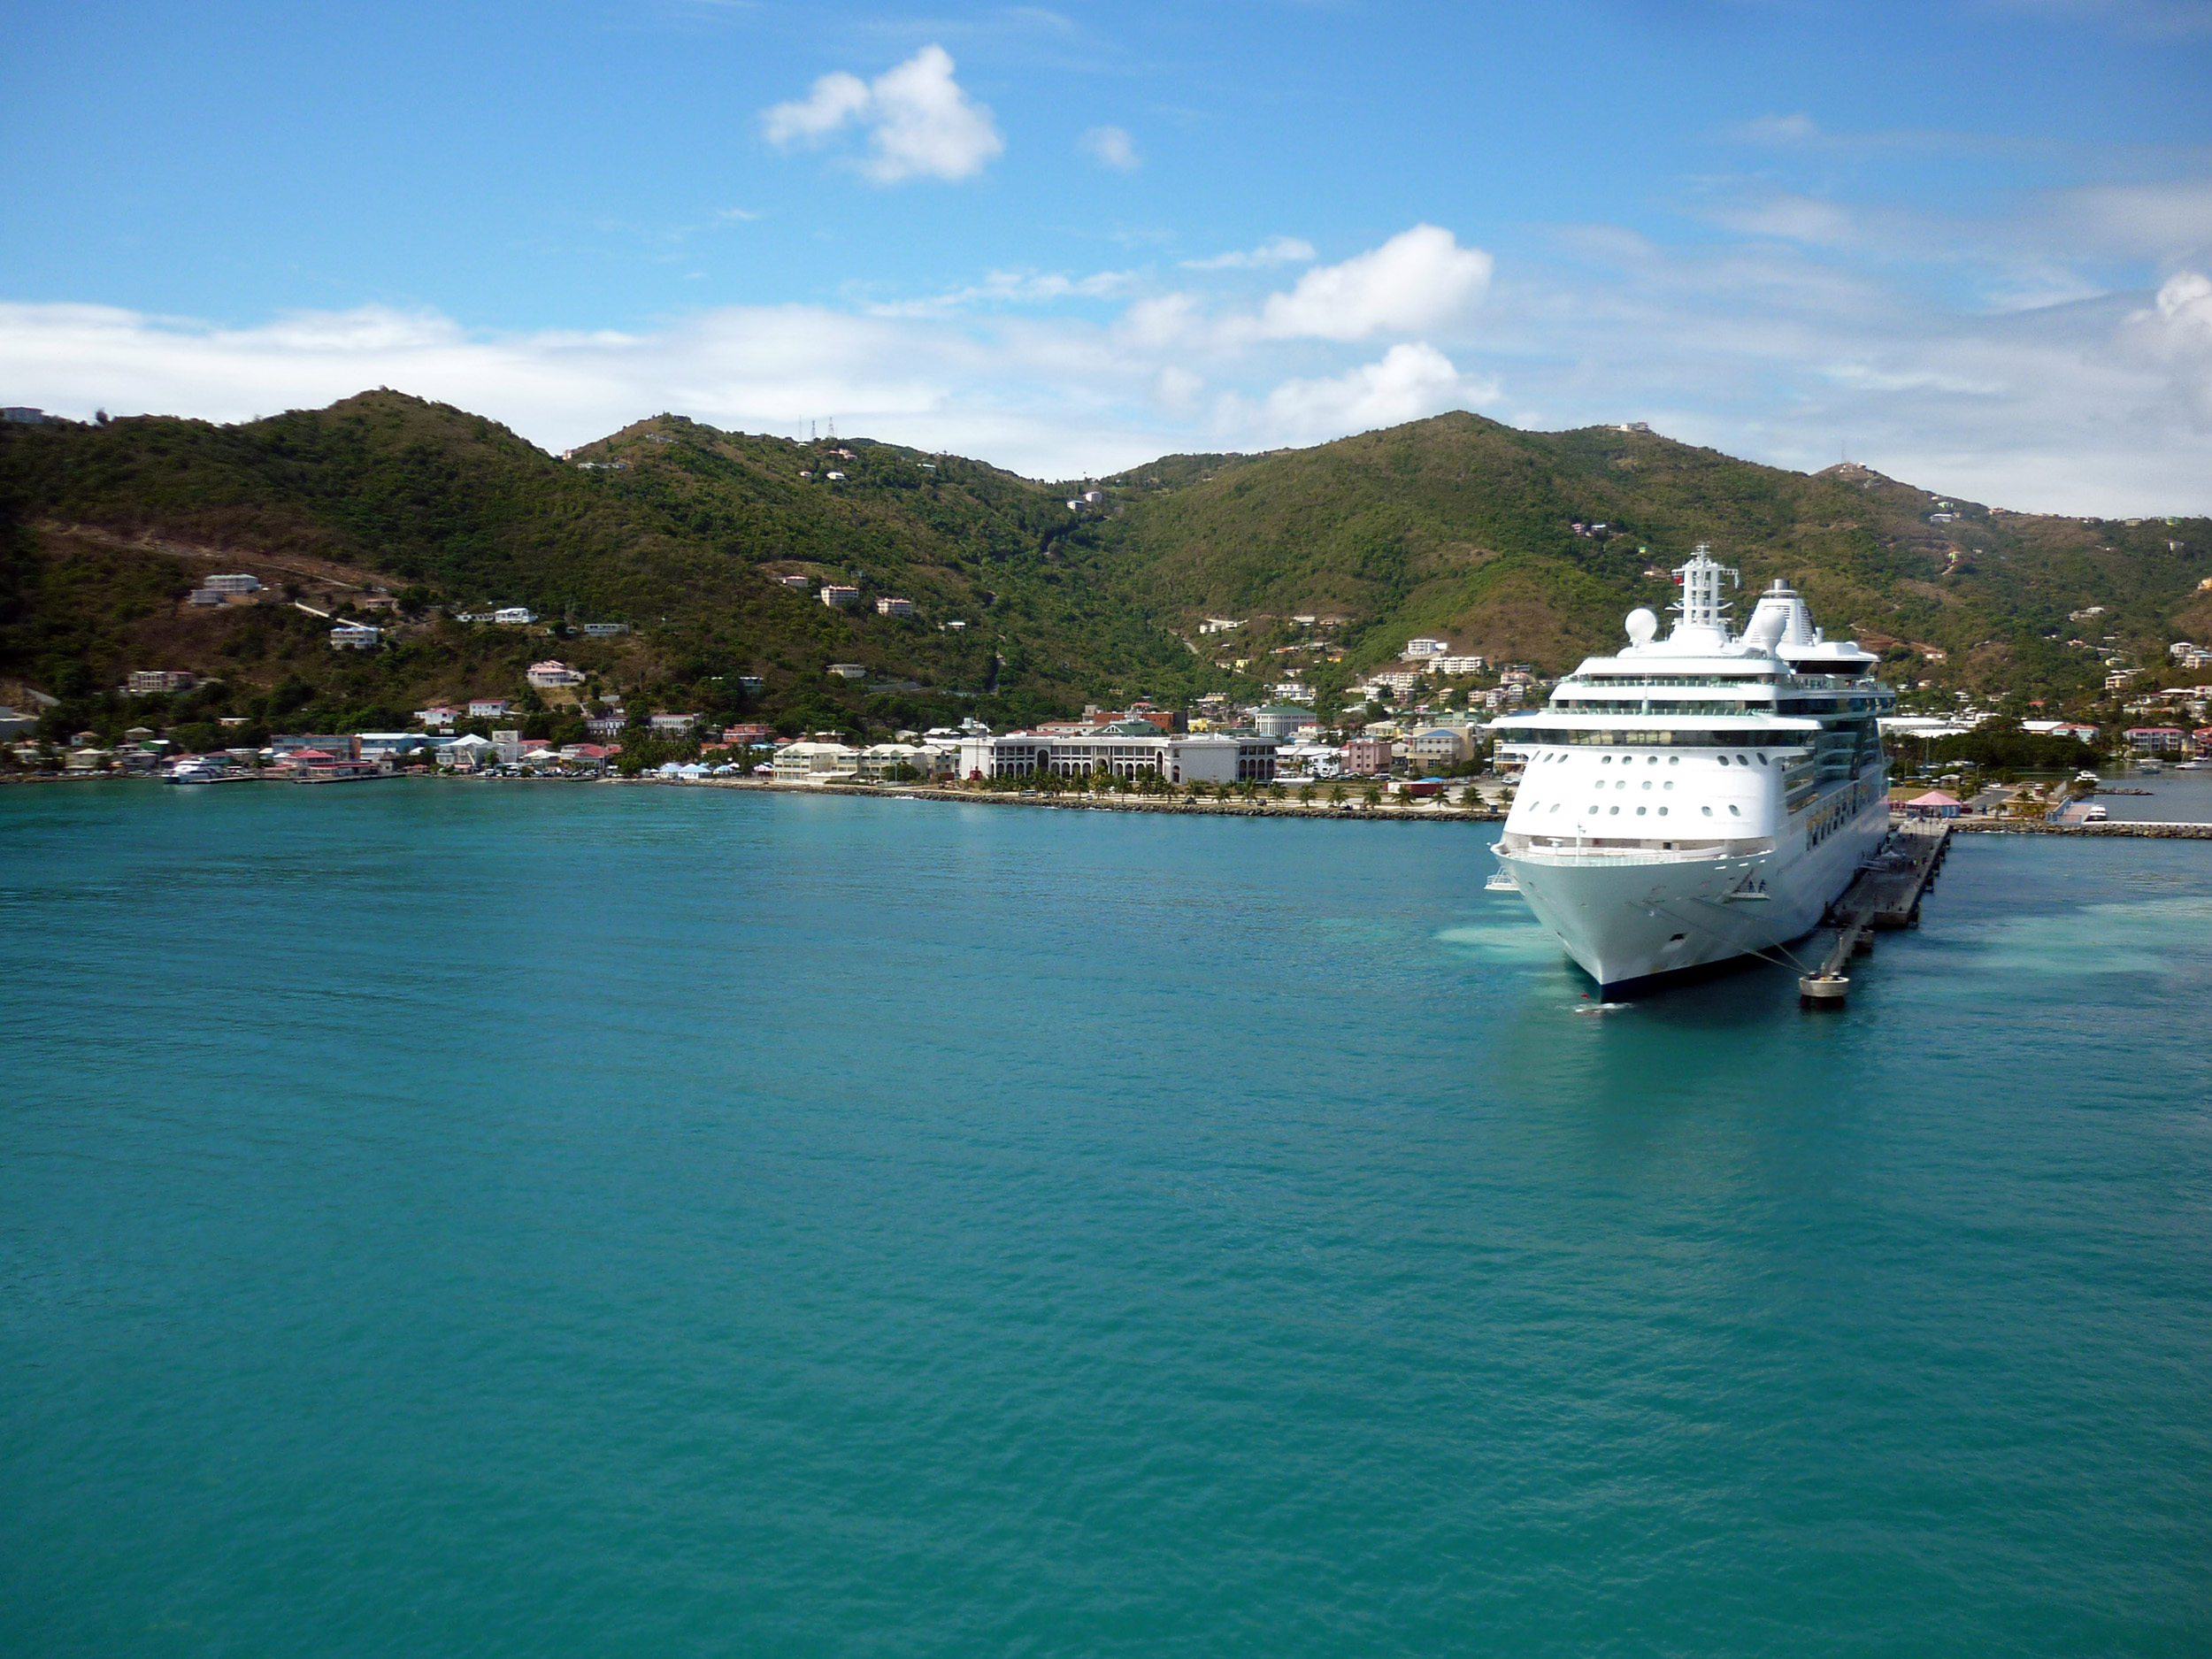 a boat in the harbour at road town, tortola, british virgin islands